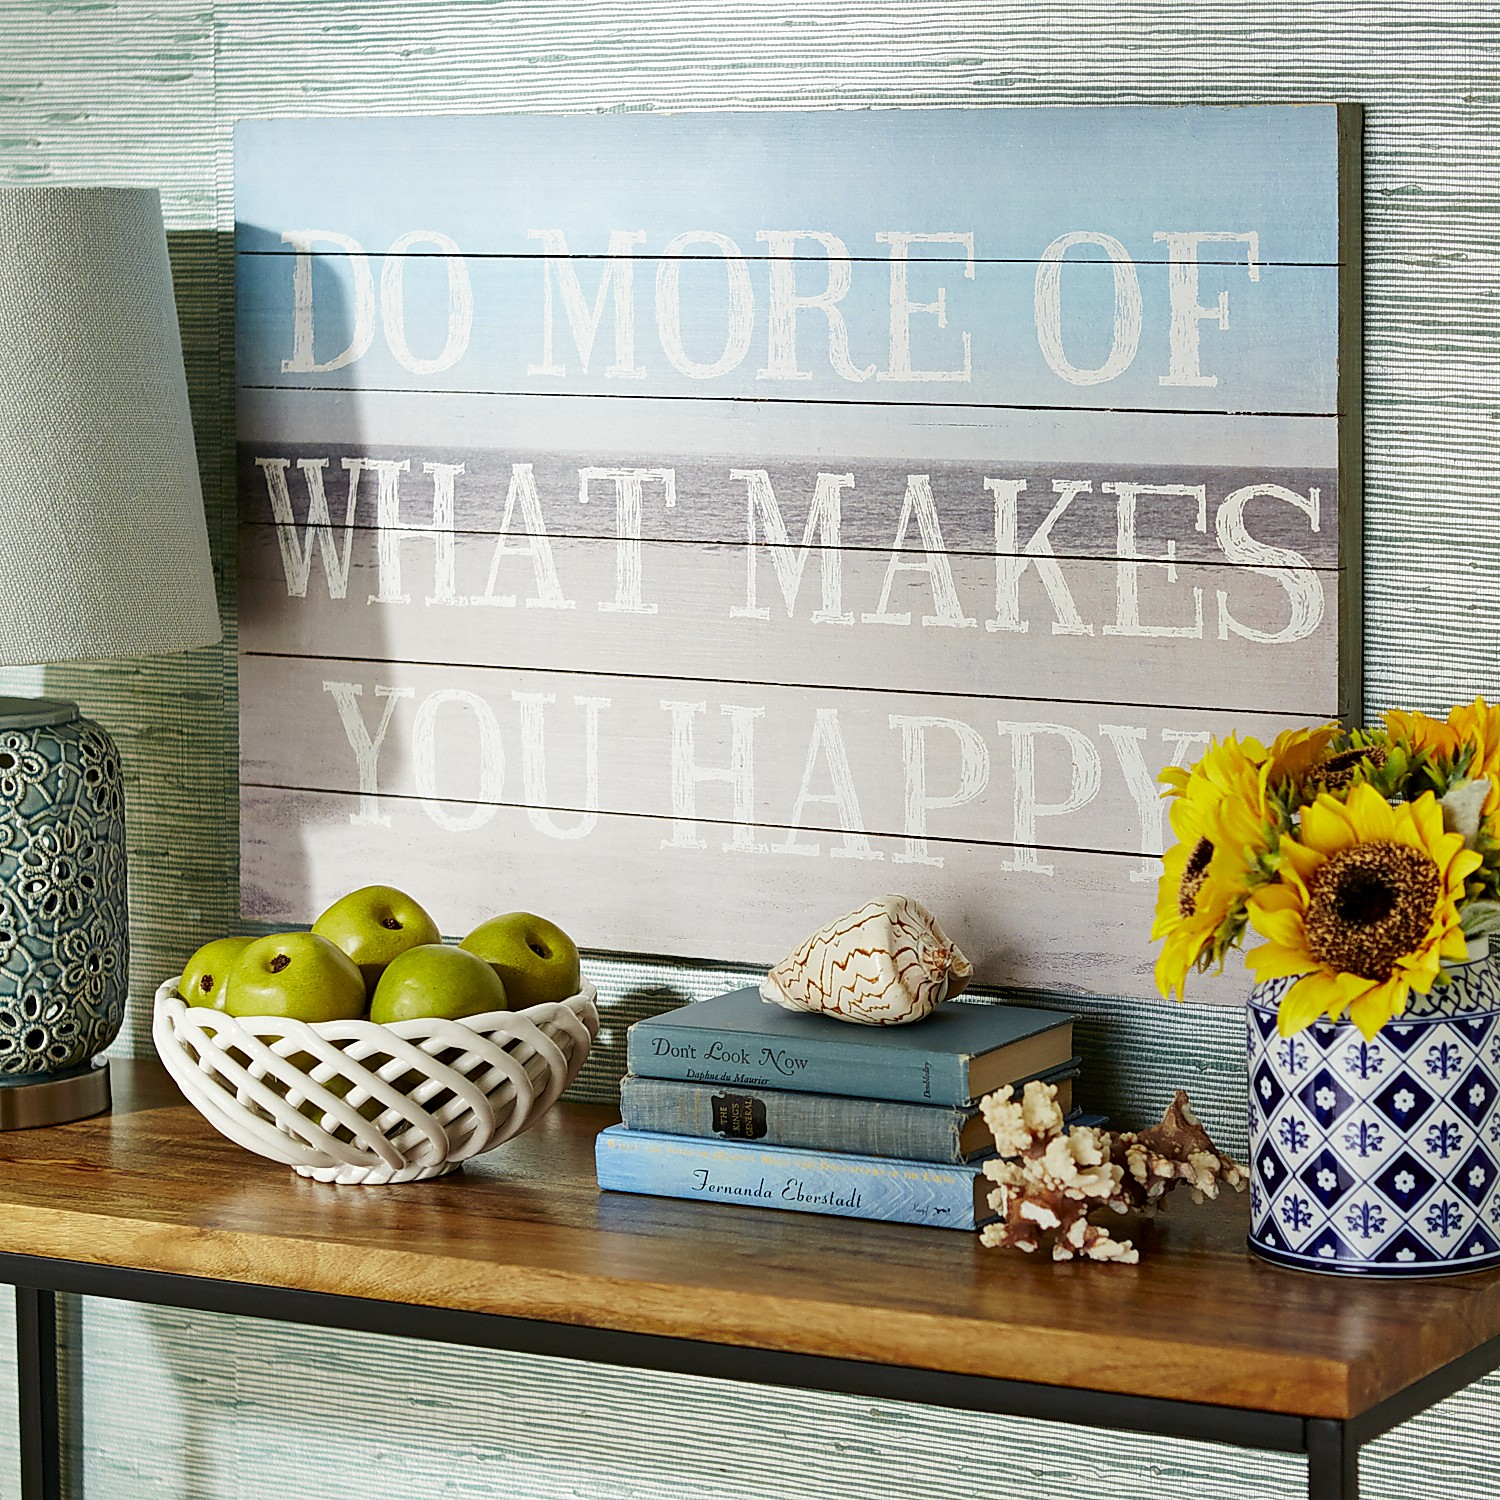 What Makes You Happy Wall Decor